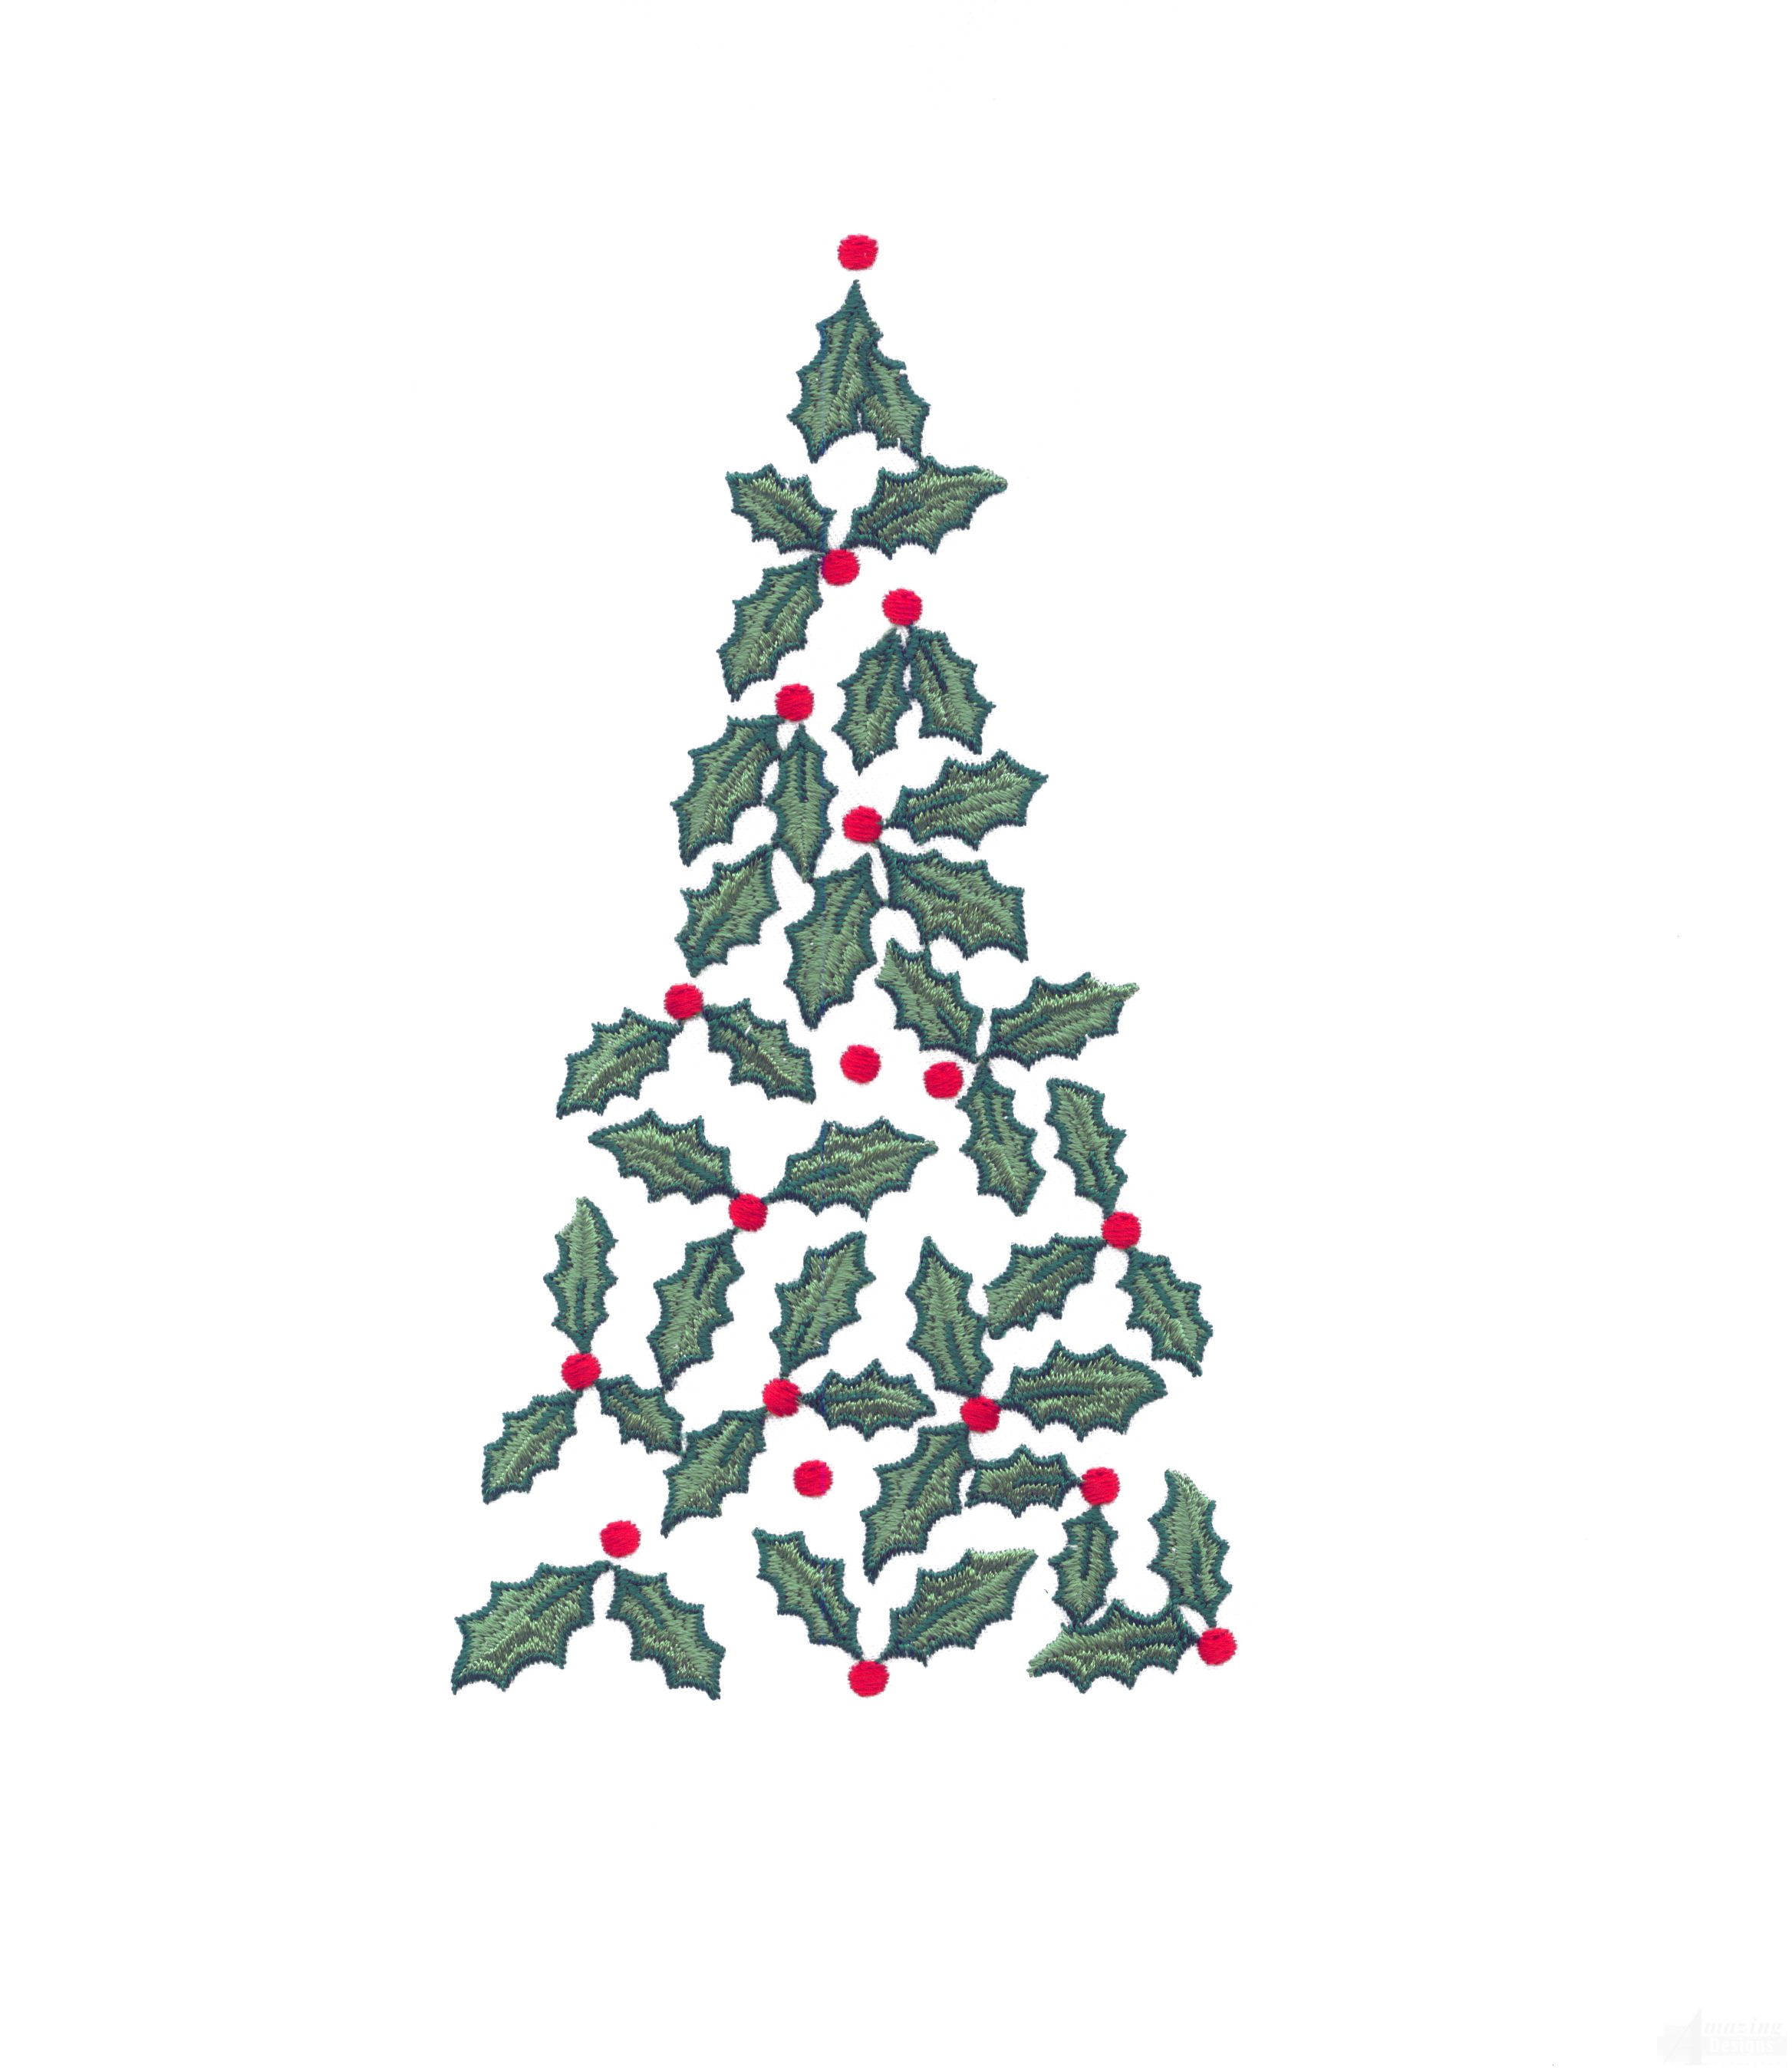 Holly christmas tree embroidery design